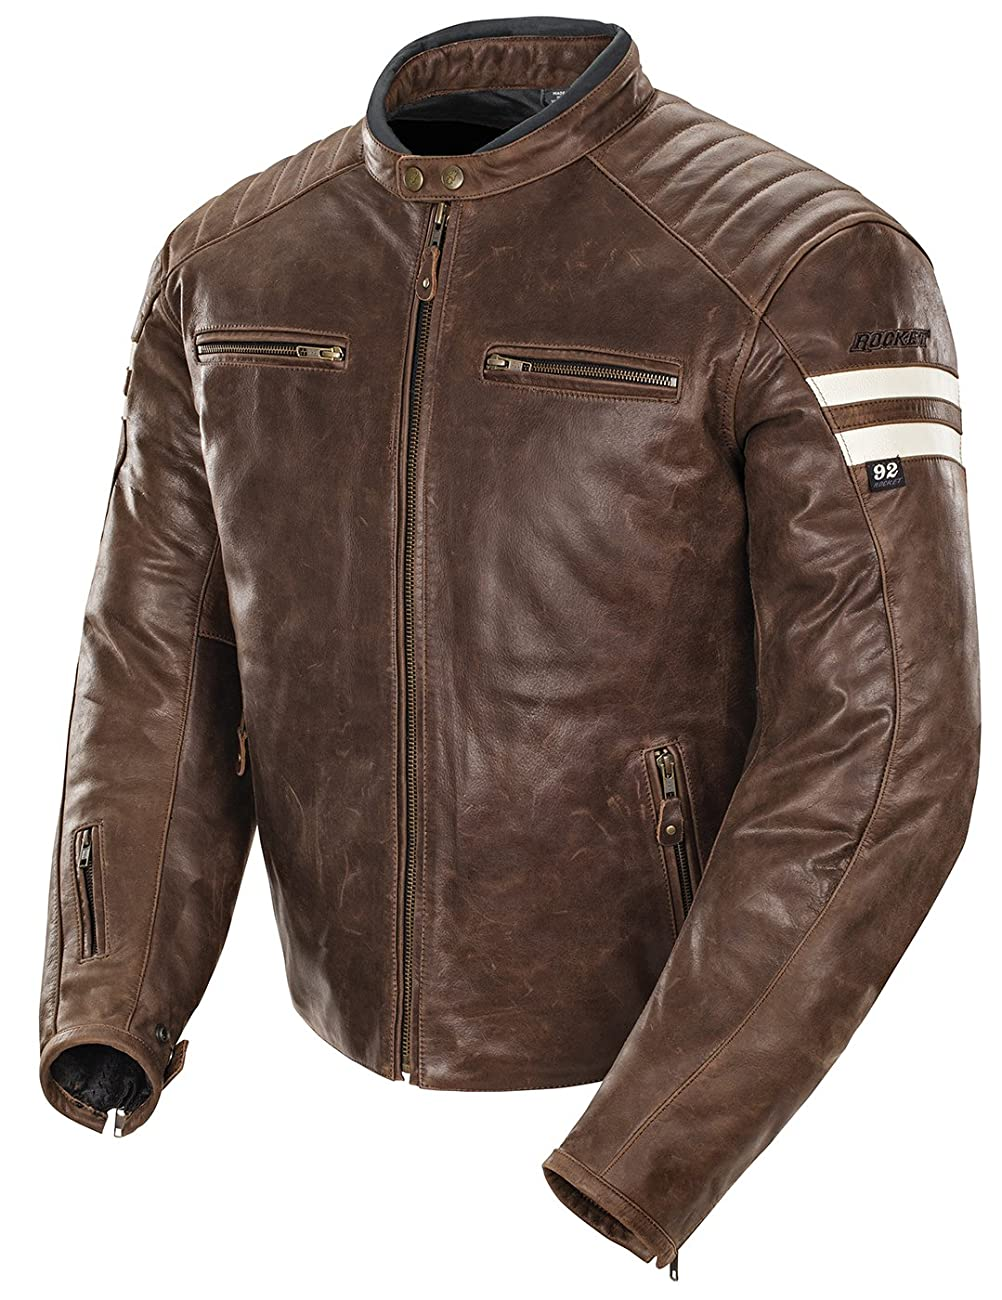 Joe Rocket Classic '92 Men's Leather Motorcycle Jacket (Brown/Cream, Medium) 0